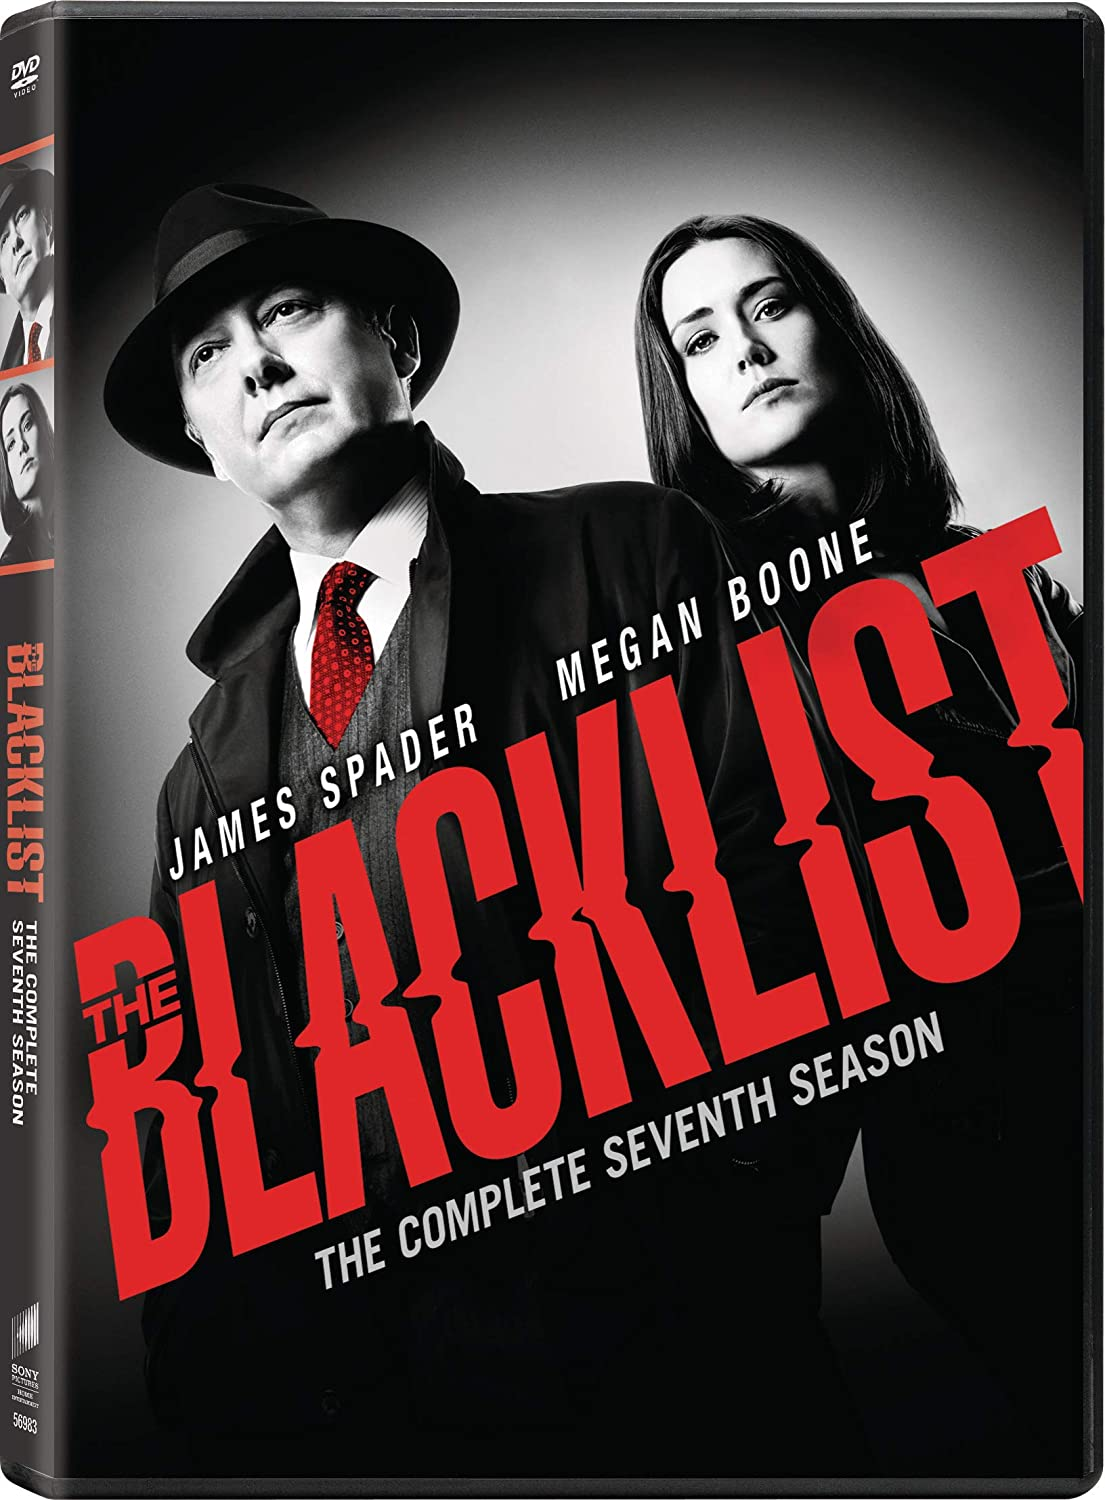 Blacklist Season 7 DVD Sony DVDs & Blu-ray Discs